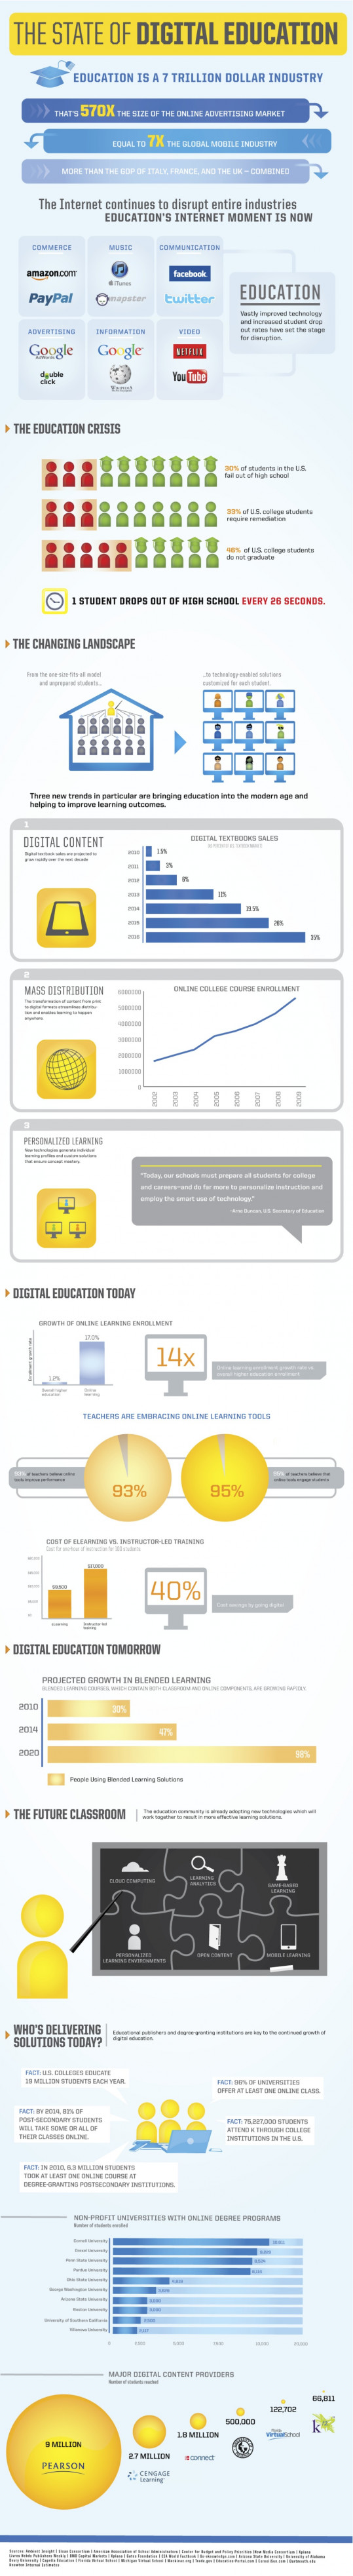 The State of Digital Education